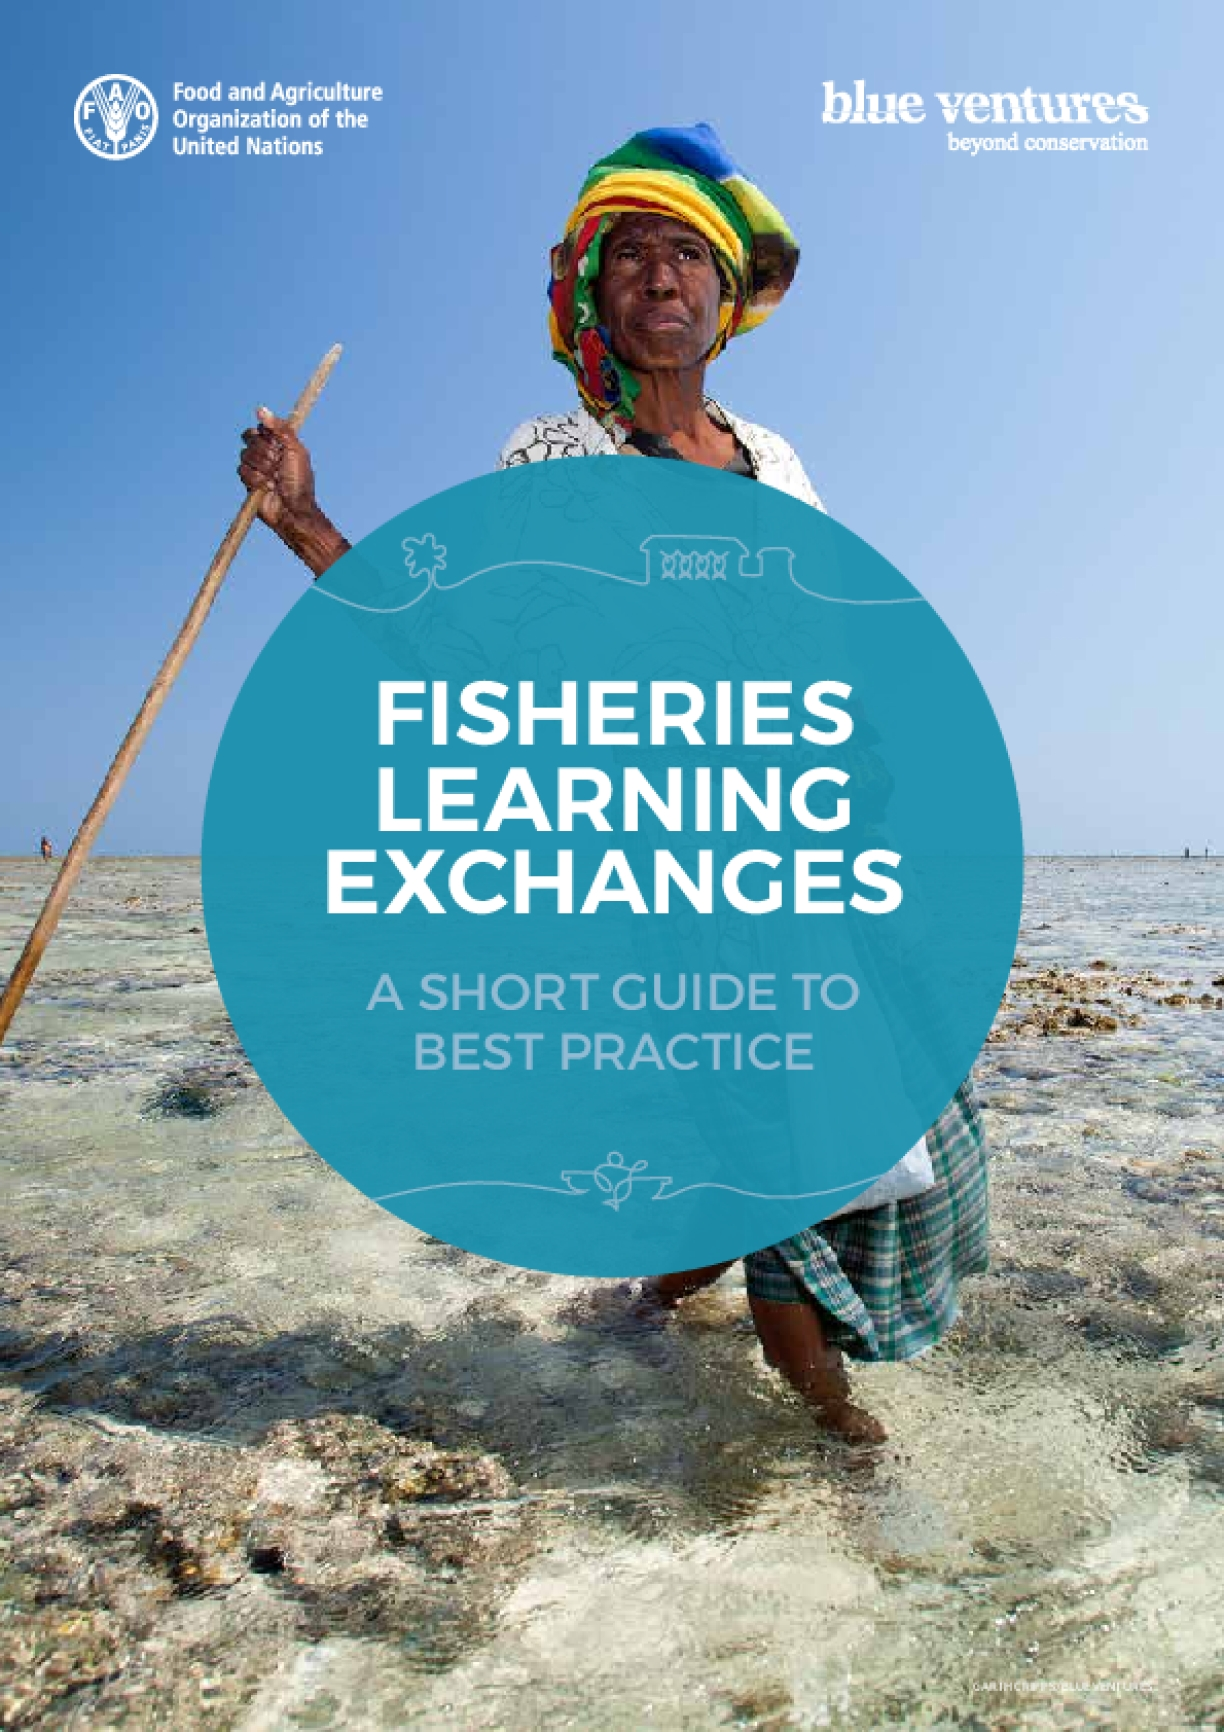 Fisheries Learning Exchanges: A Short Guide to Best Practice